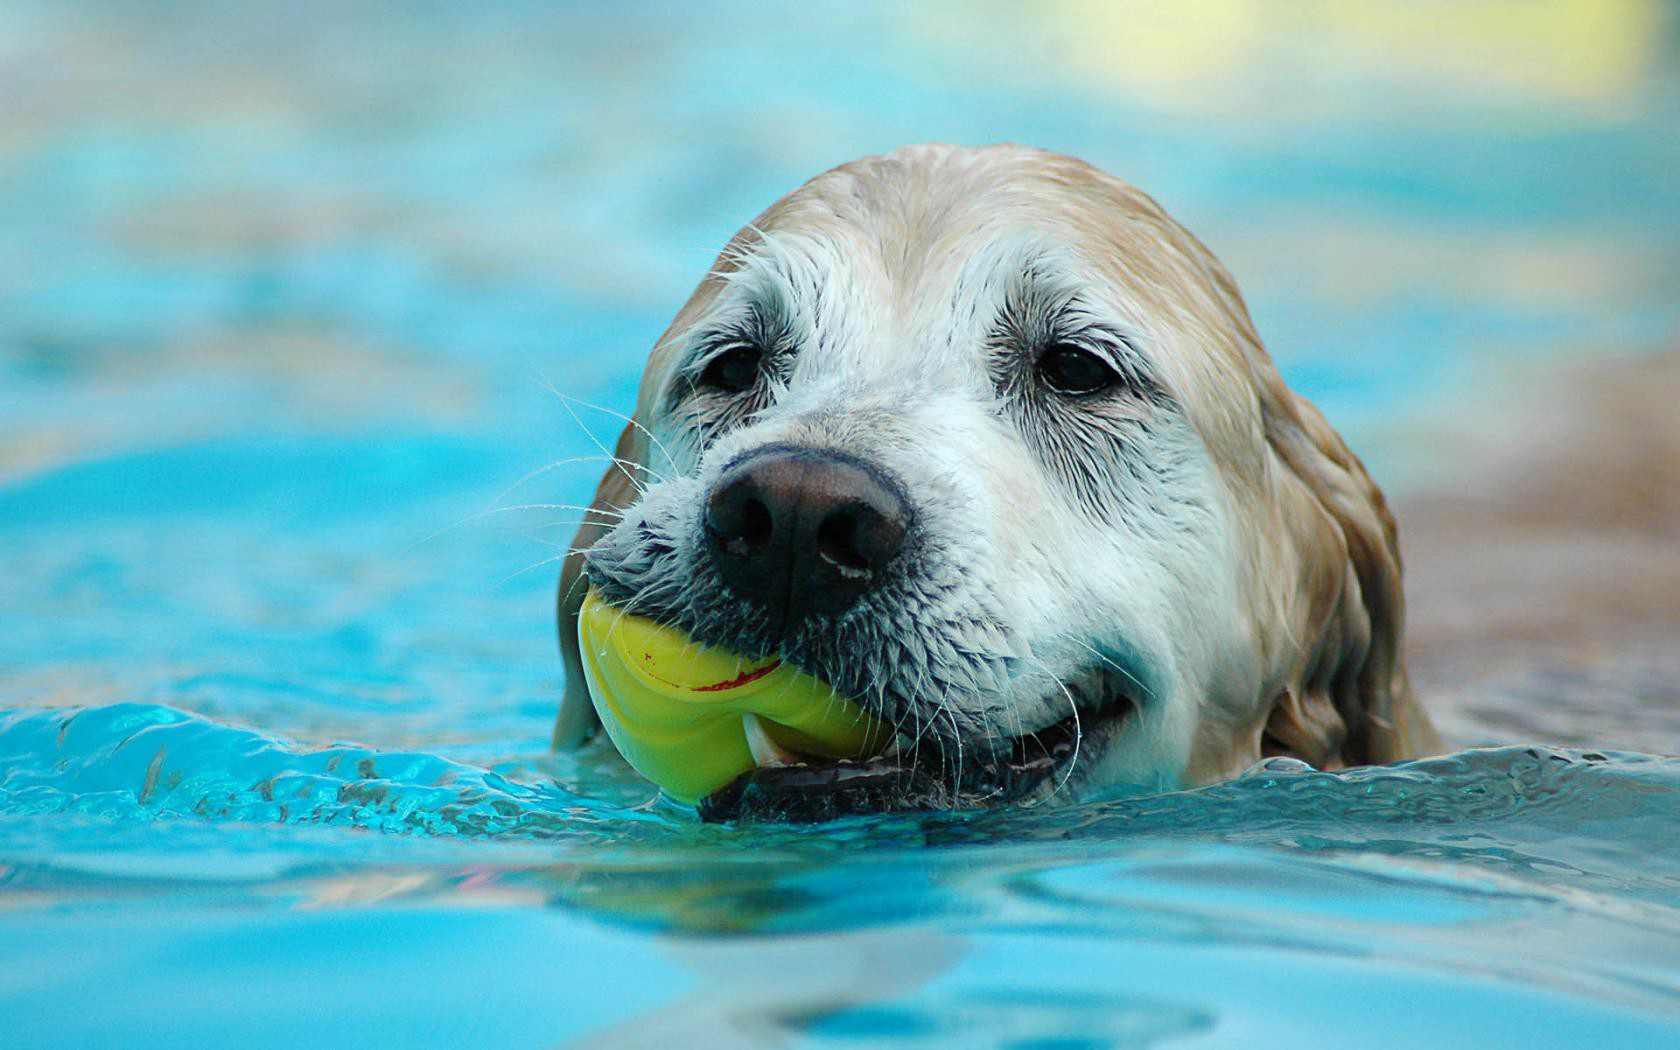 Swimming With Your Dog – Safety Tips For The Summer